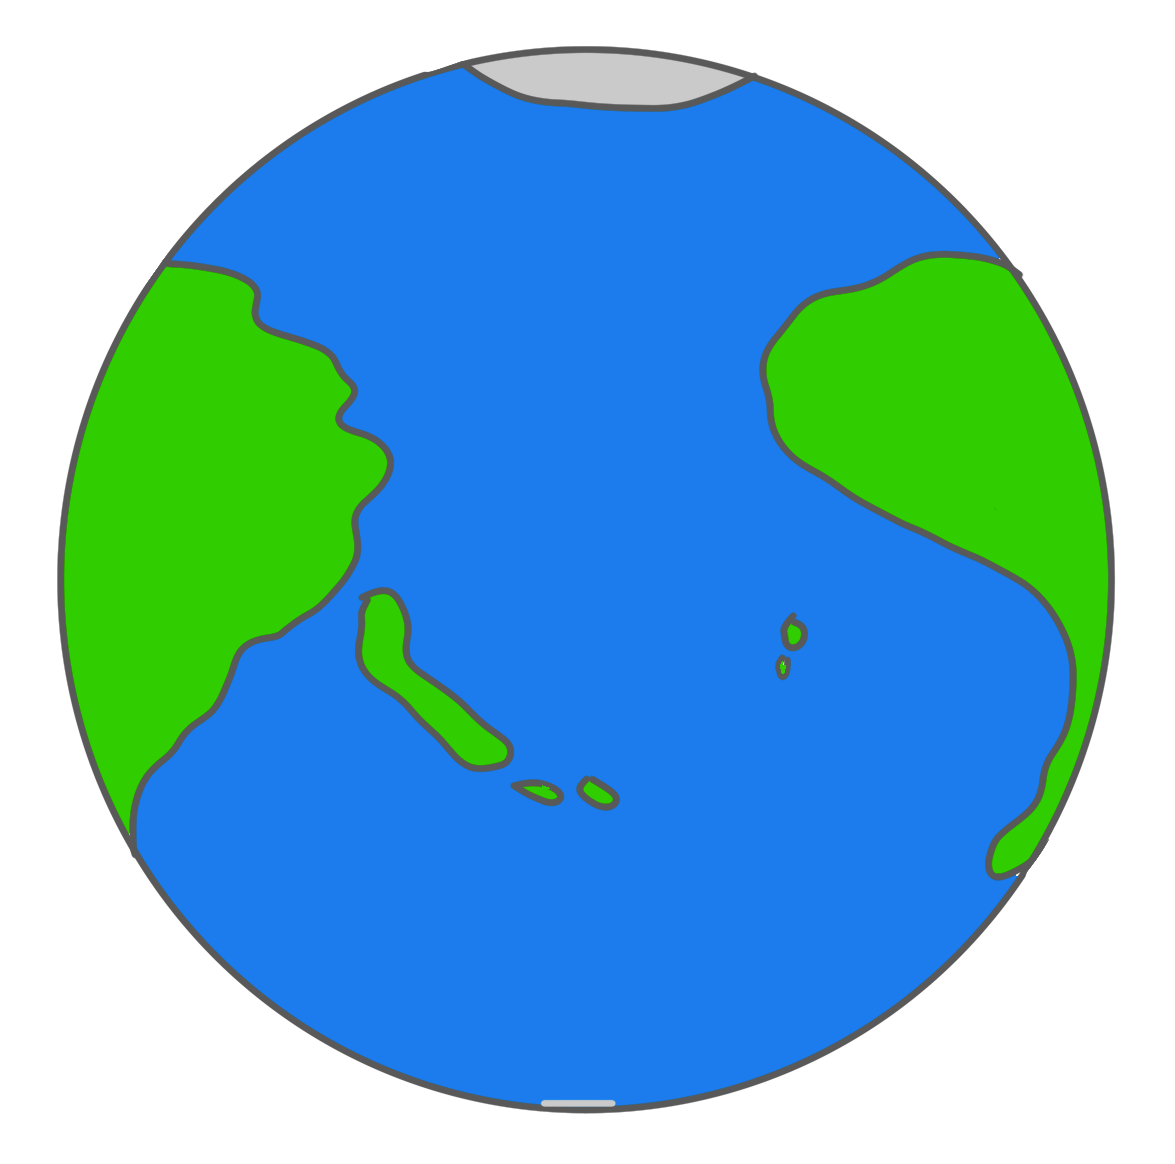 Planets clipart earth day #4